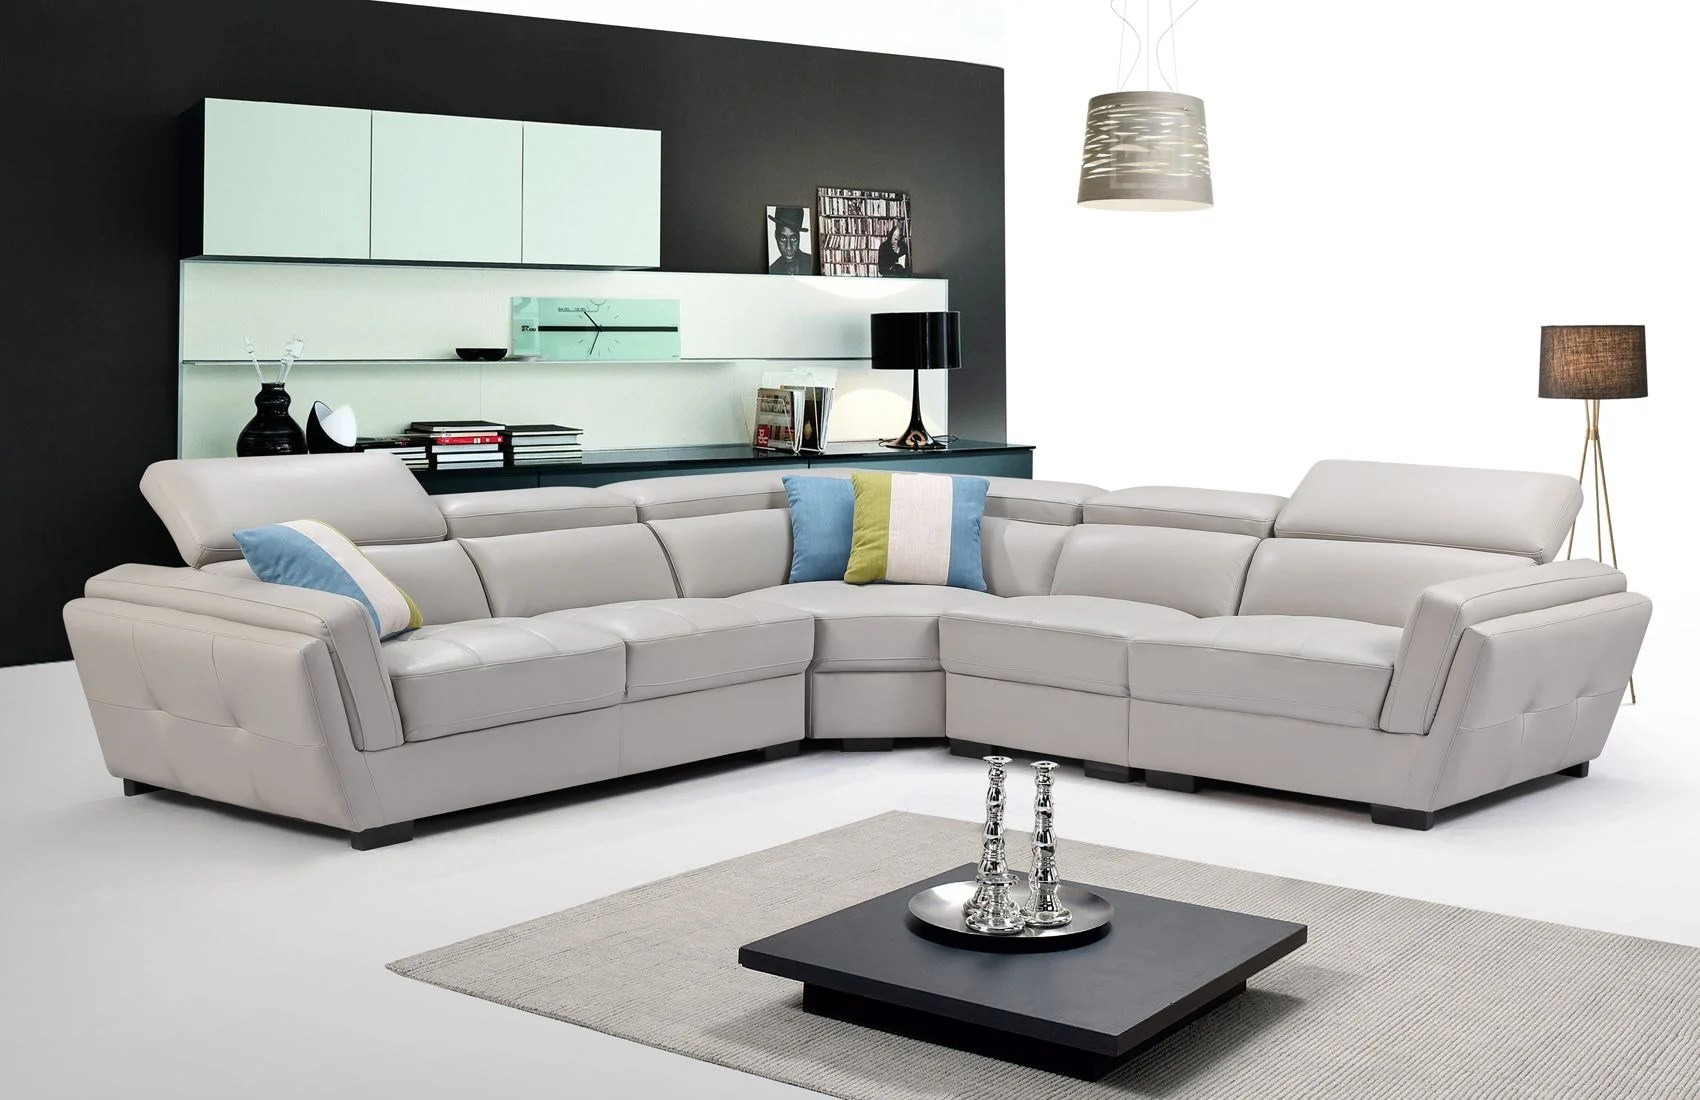 gray leather 2566 sectional sofa set